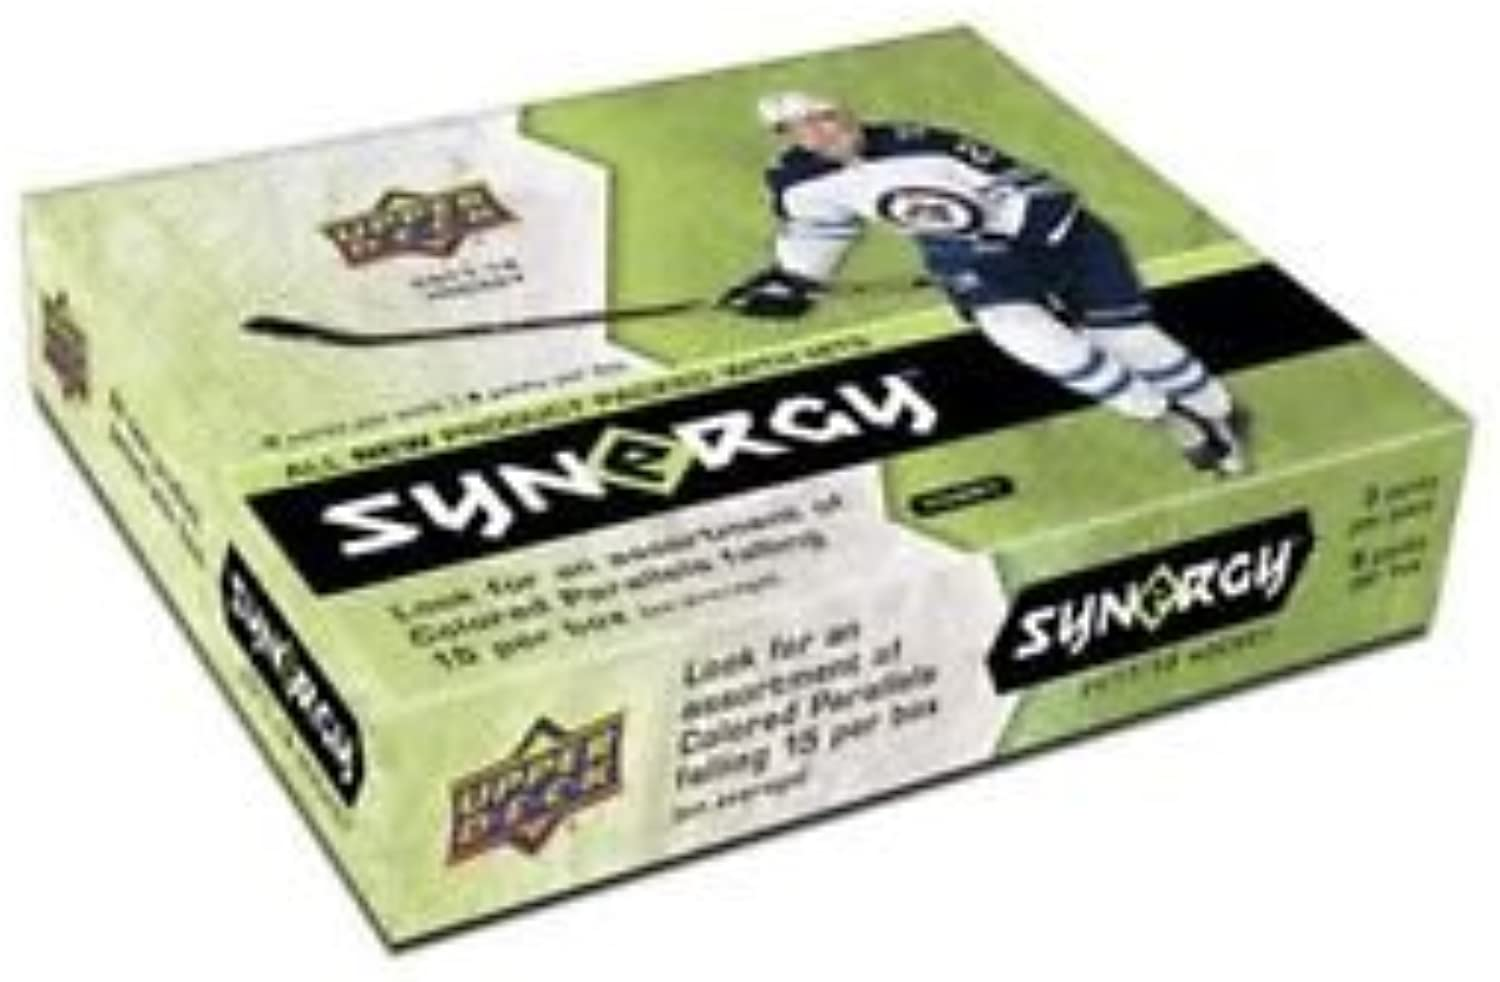 201718 Upper Deck Synergy Sealed Box NHL Hockey Box ( 8 Packs per Box )